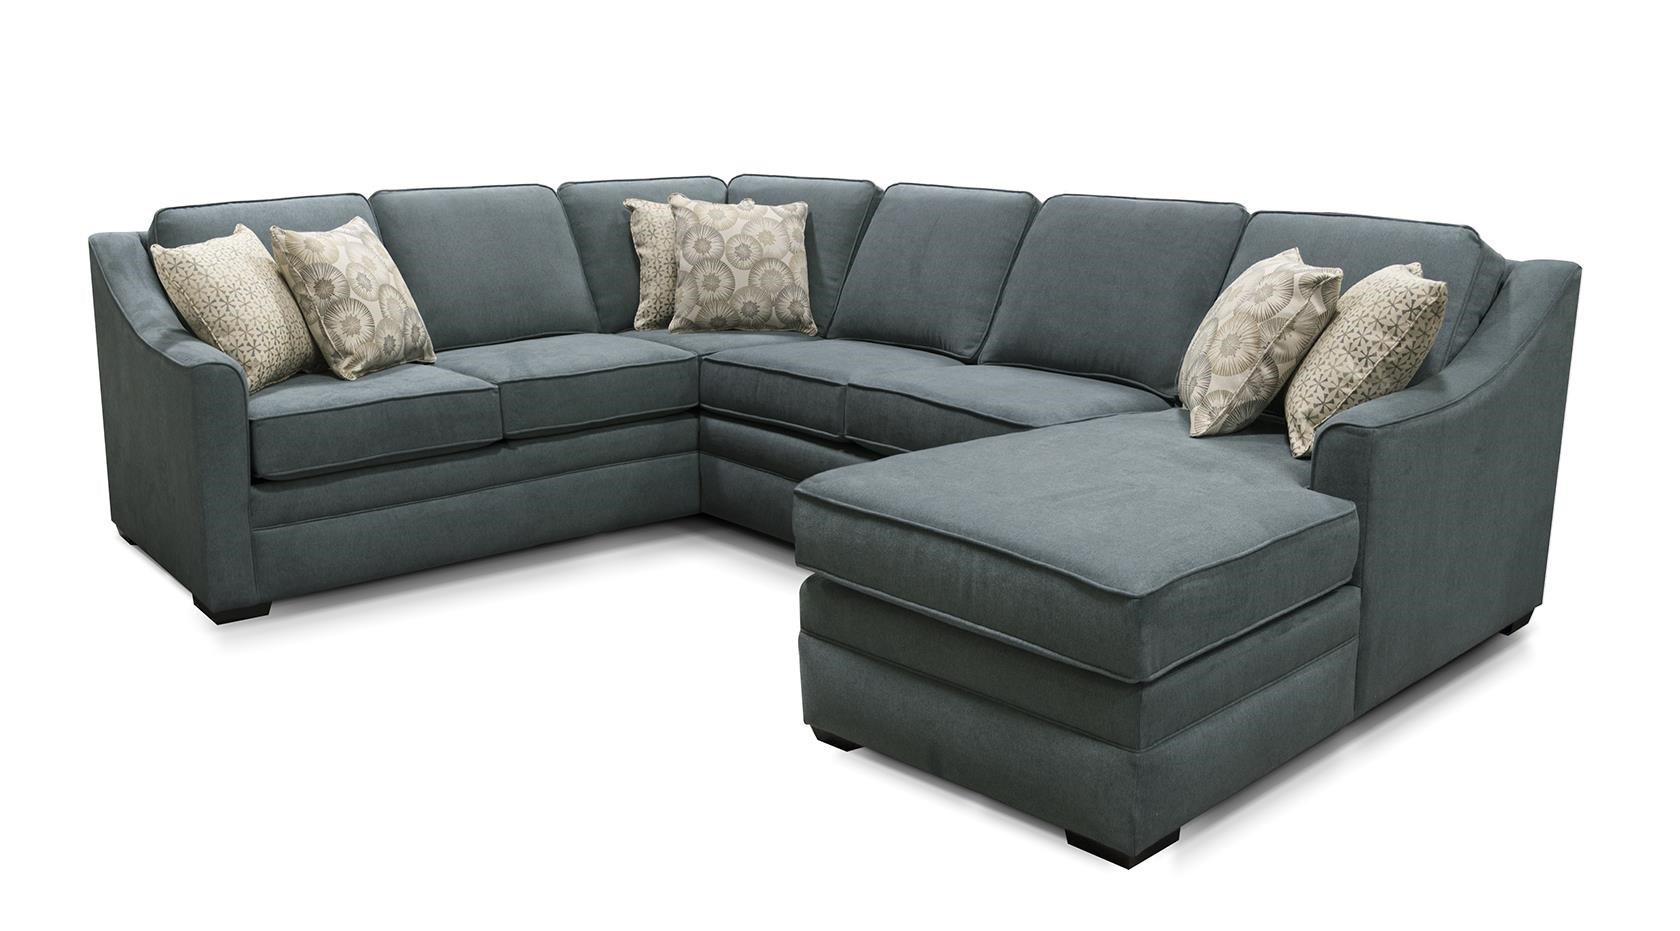 England Thomas Sectional Sofa with Five Seats | Dunk ...